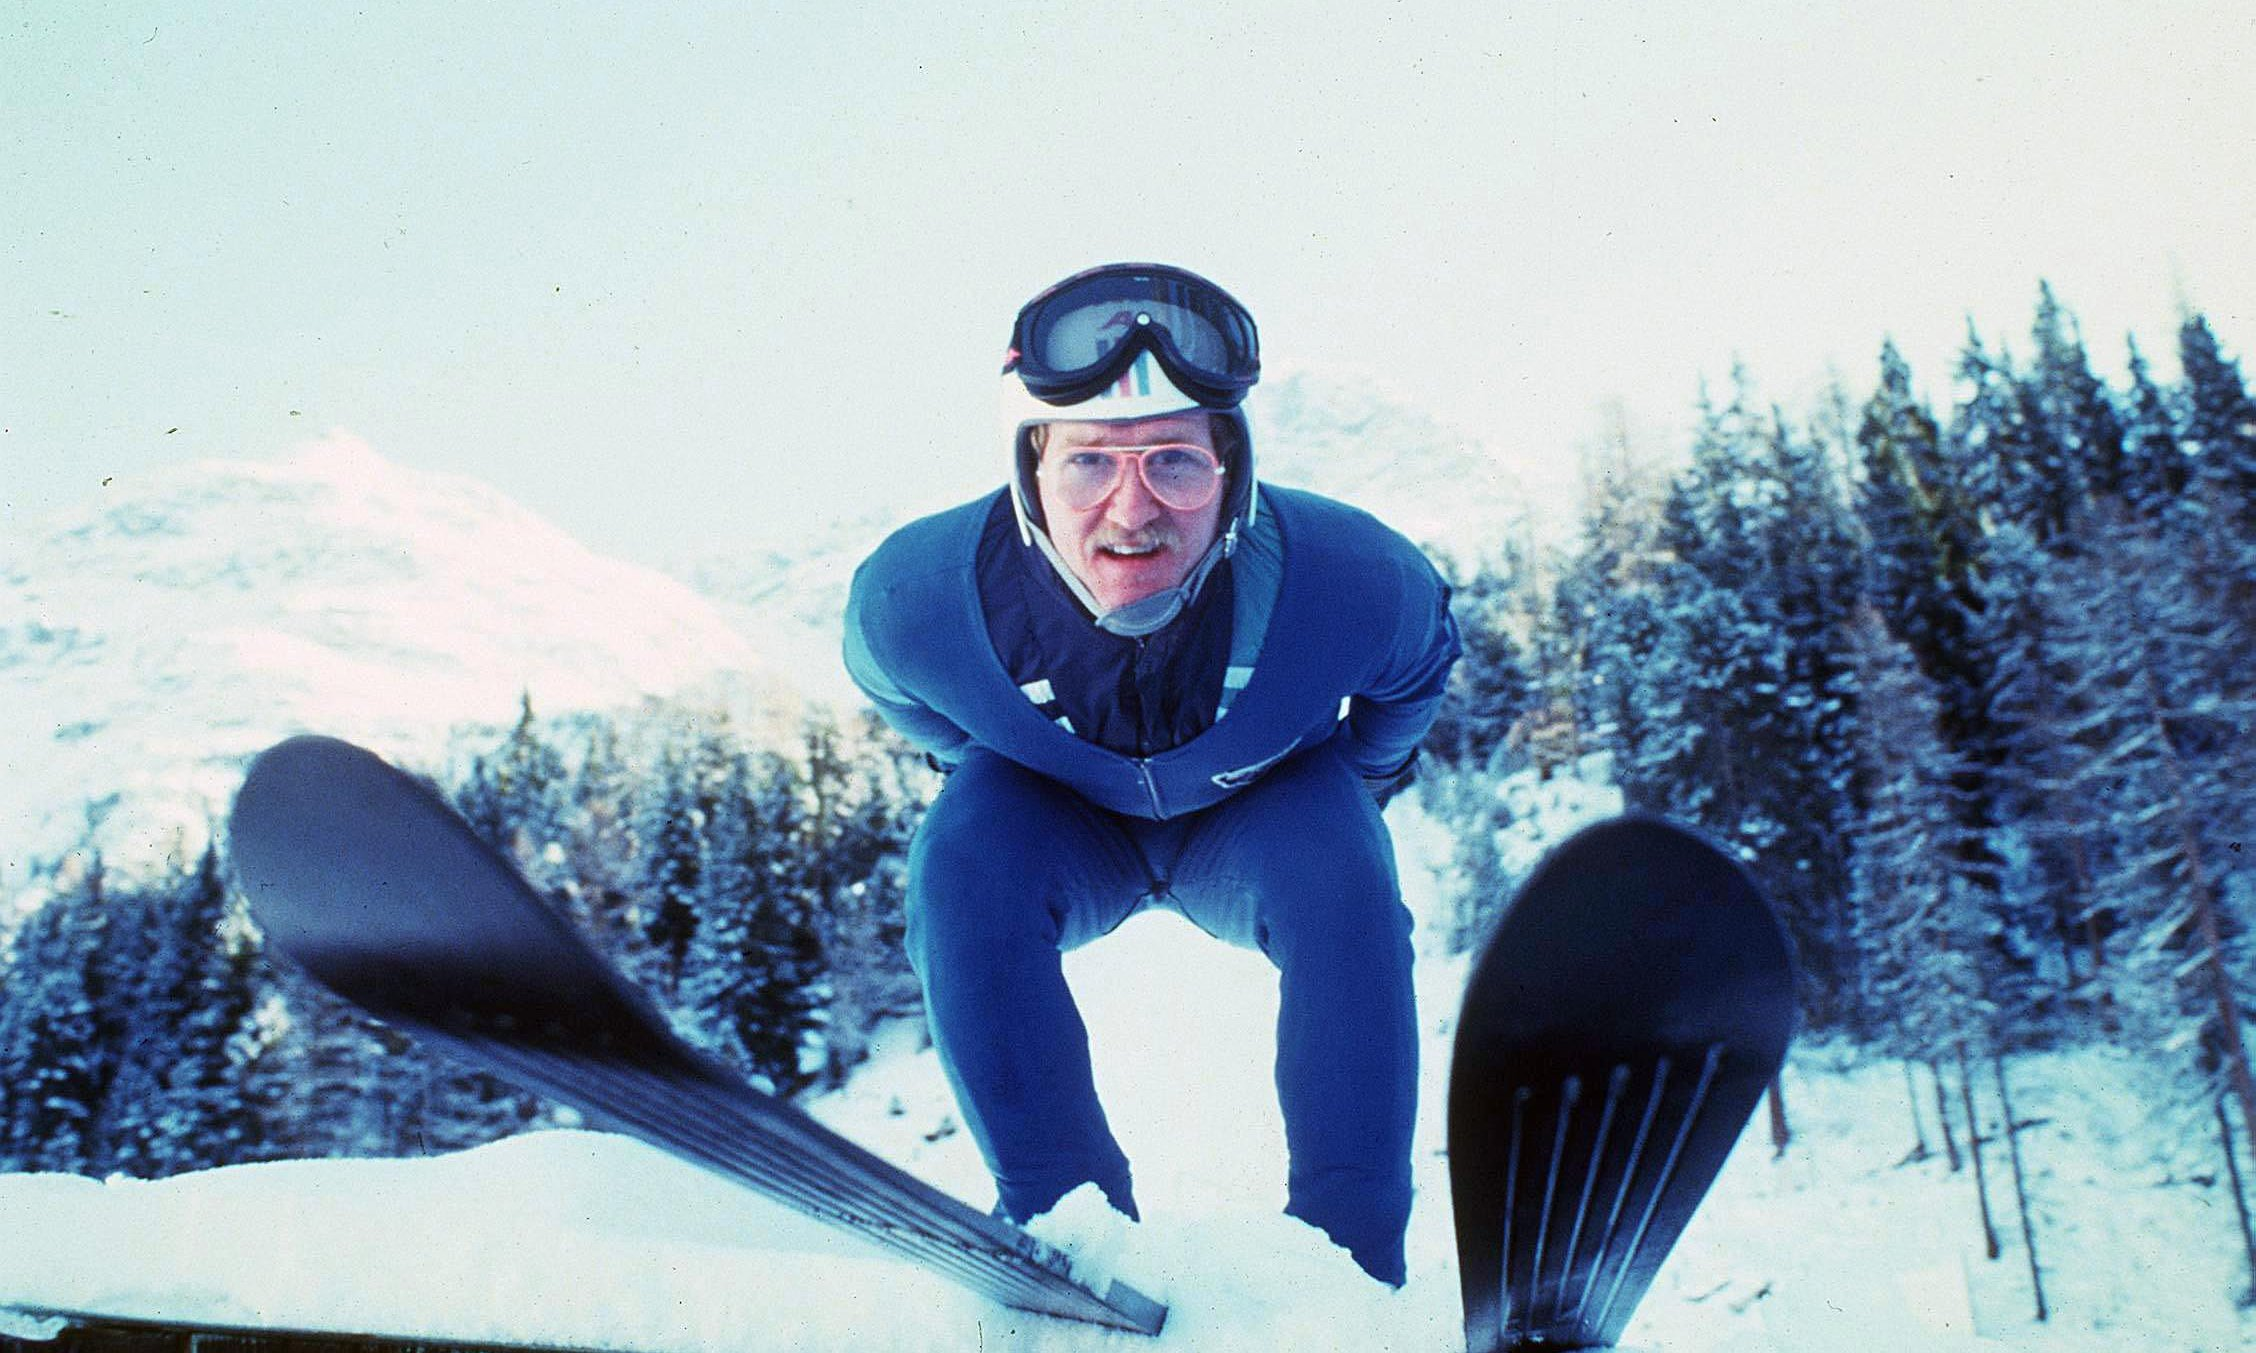 эдди орел фильм история эдди эдвардс eddie the eagle movie the story behind